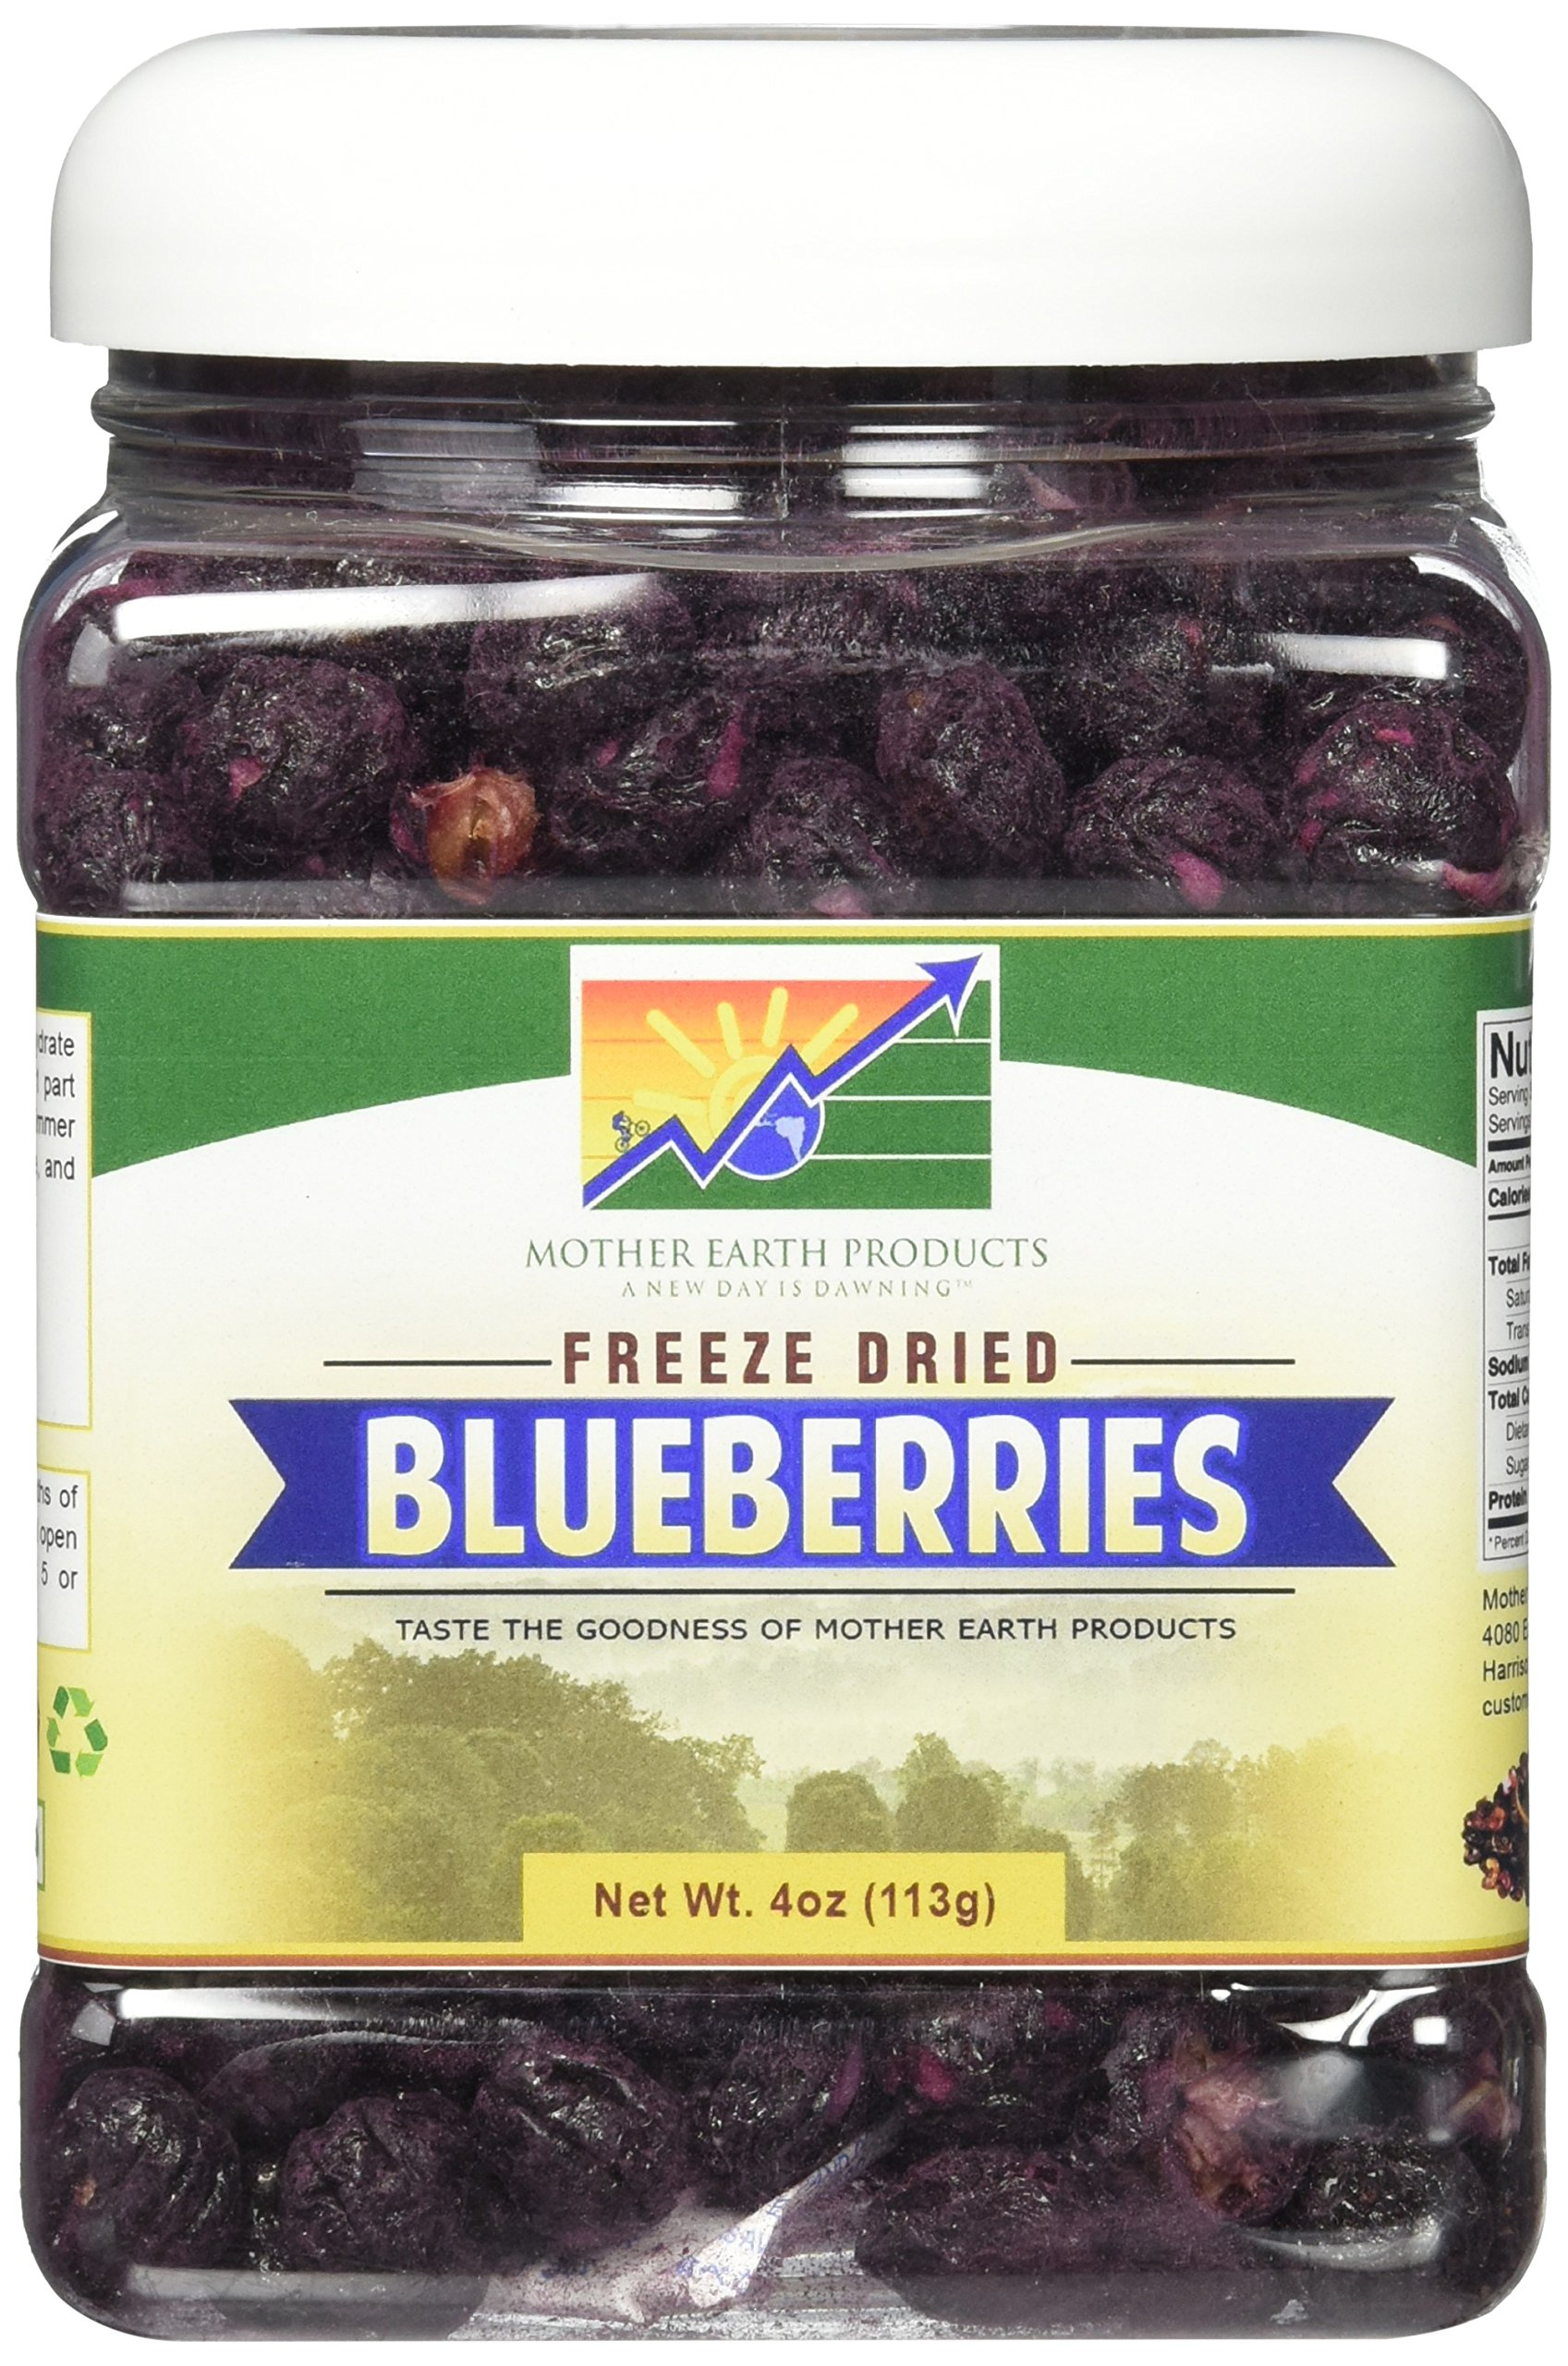 Mother Earth Products Freeze Dried Blueberries, 4 oz by Mother Earth Products (Image #1)